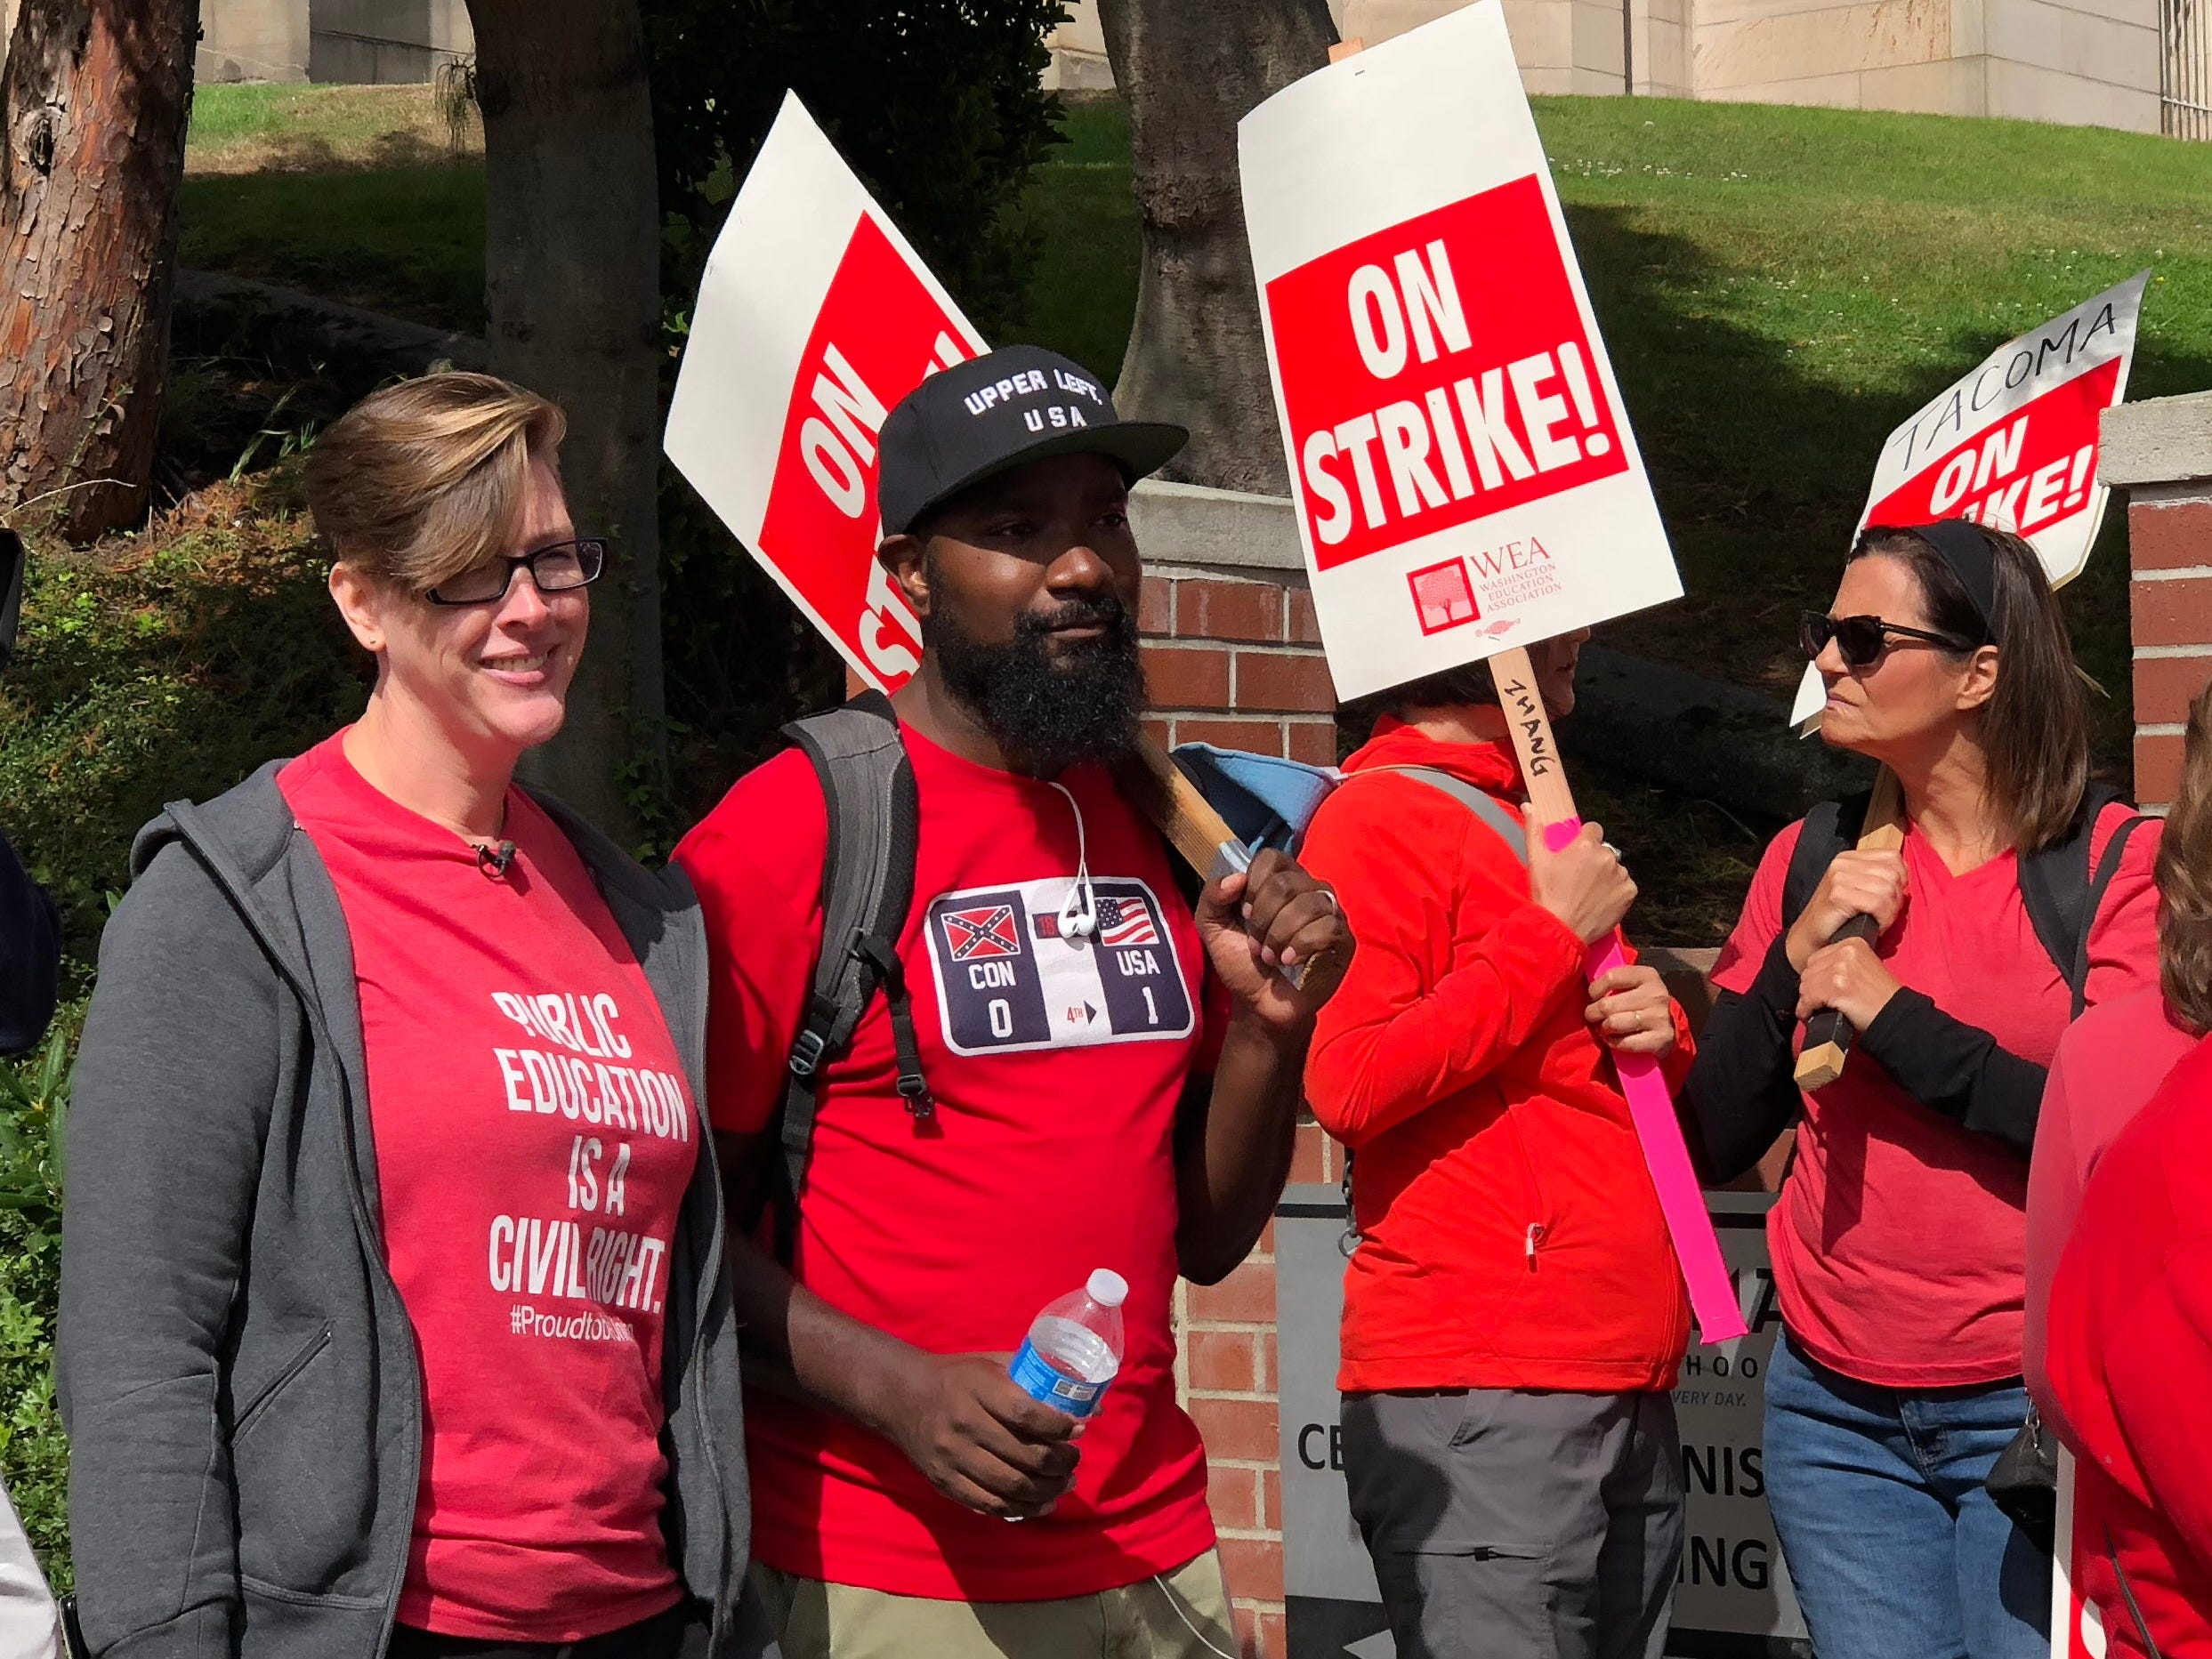 Nate Bowling, the 2016 Washington teacher of the year who works in the Tacoma School District, walks the picket line with Mandy Manning, the 2018 Washington teacher of the year, who flew in from Spokane to support her fellow teachers.